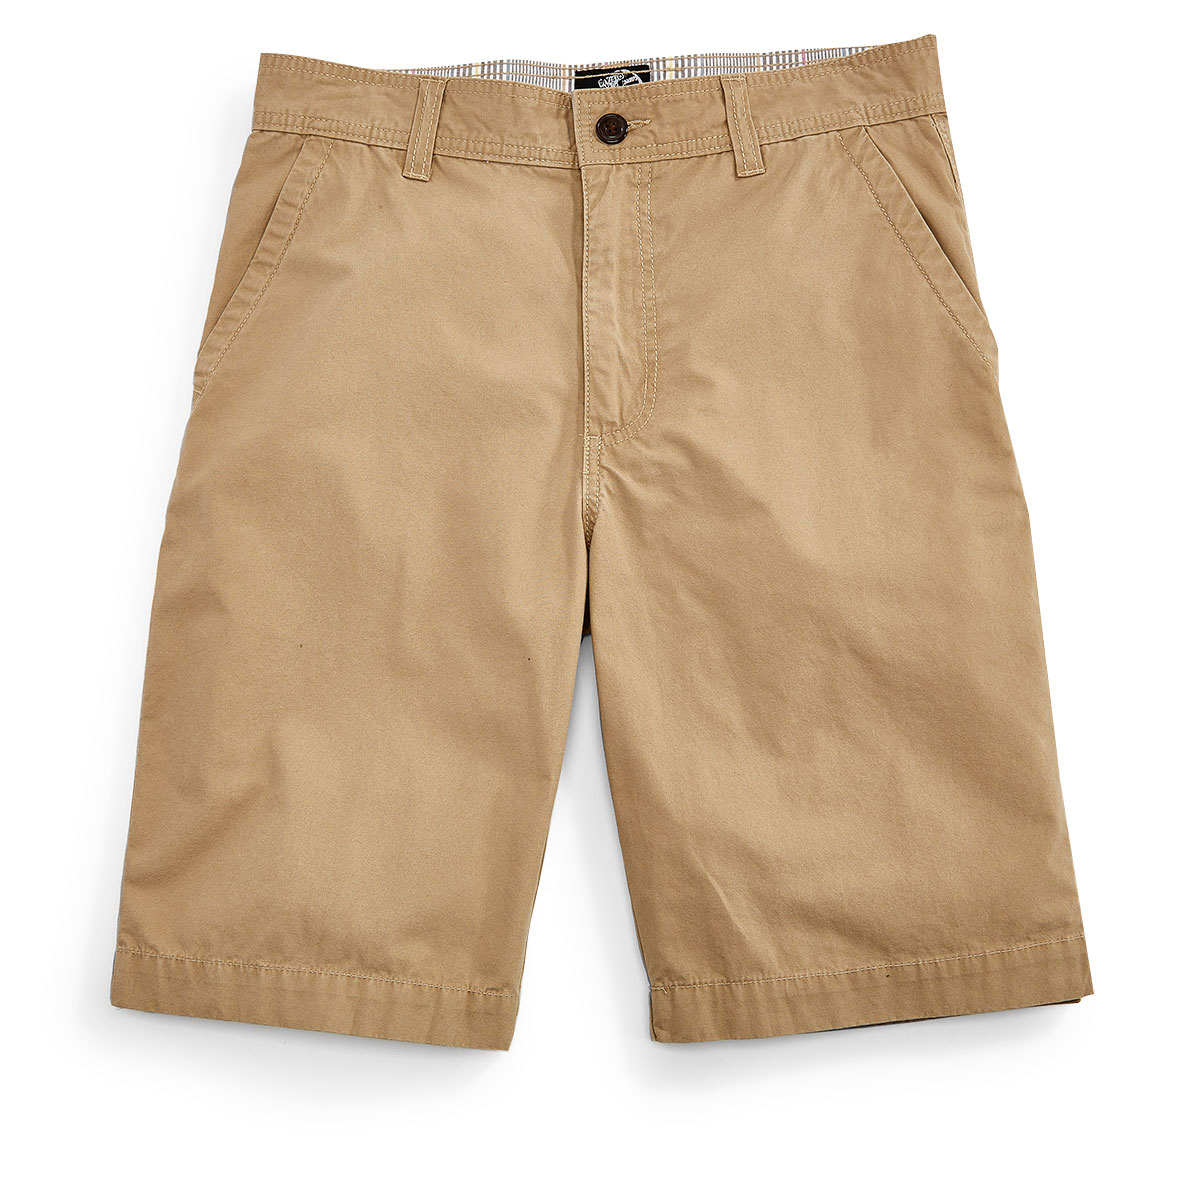 D55 Guys' Flat Front Shorts - Brown, 30